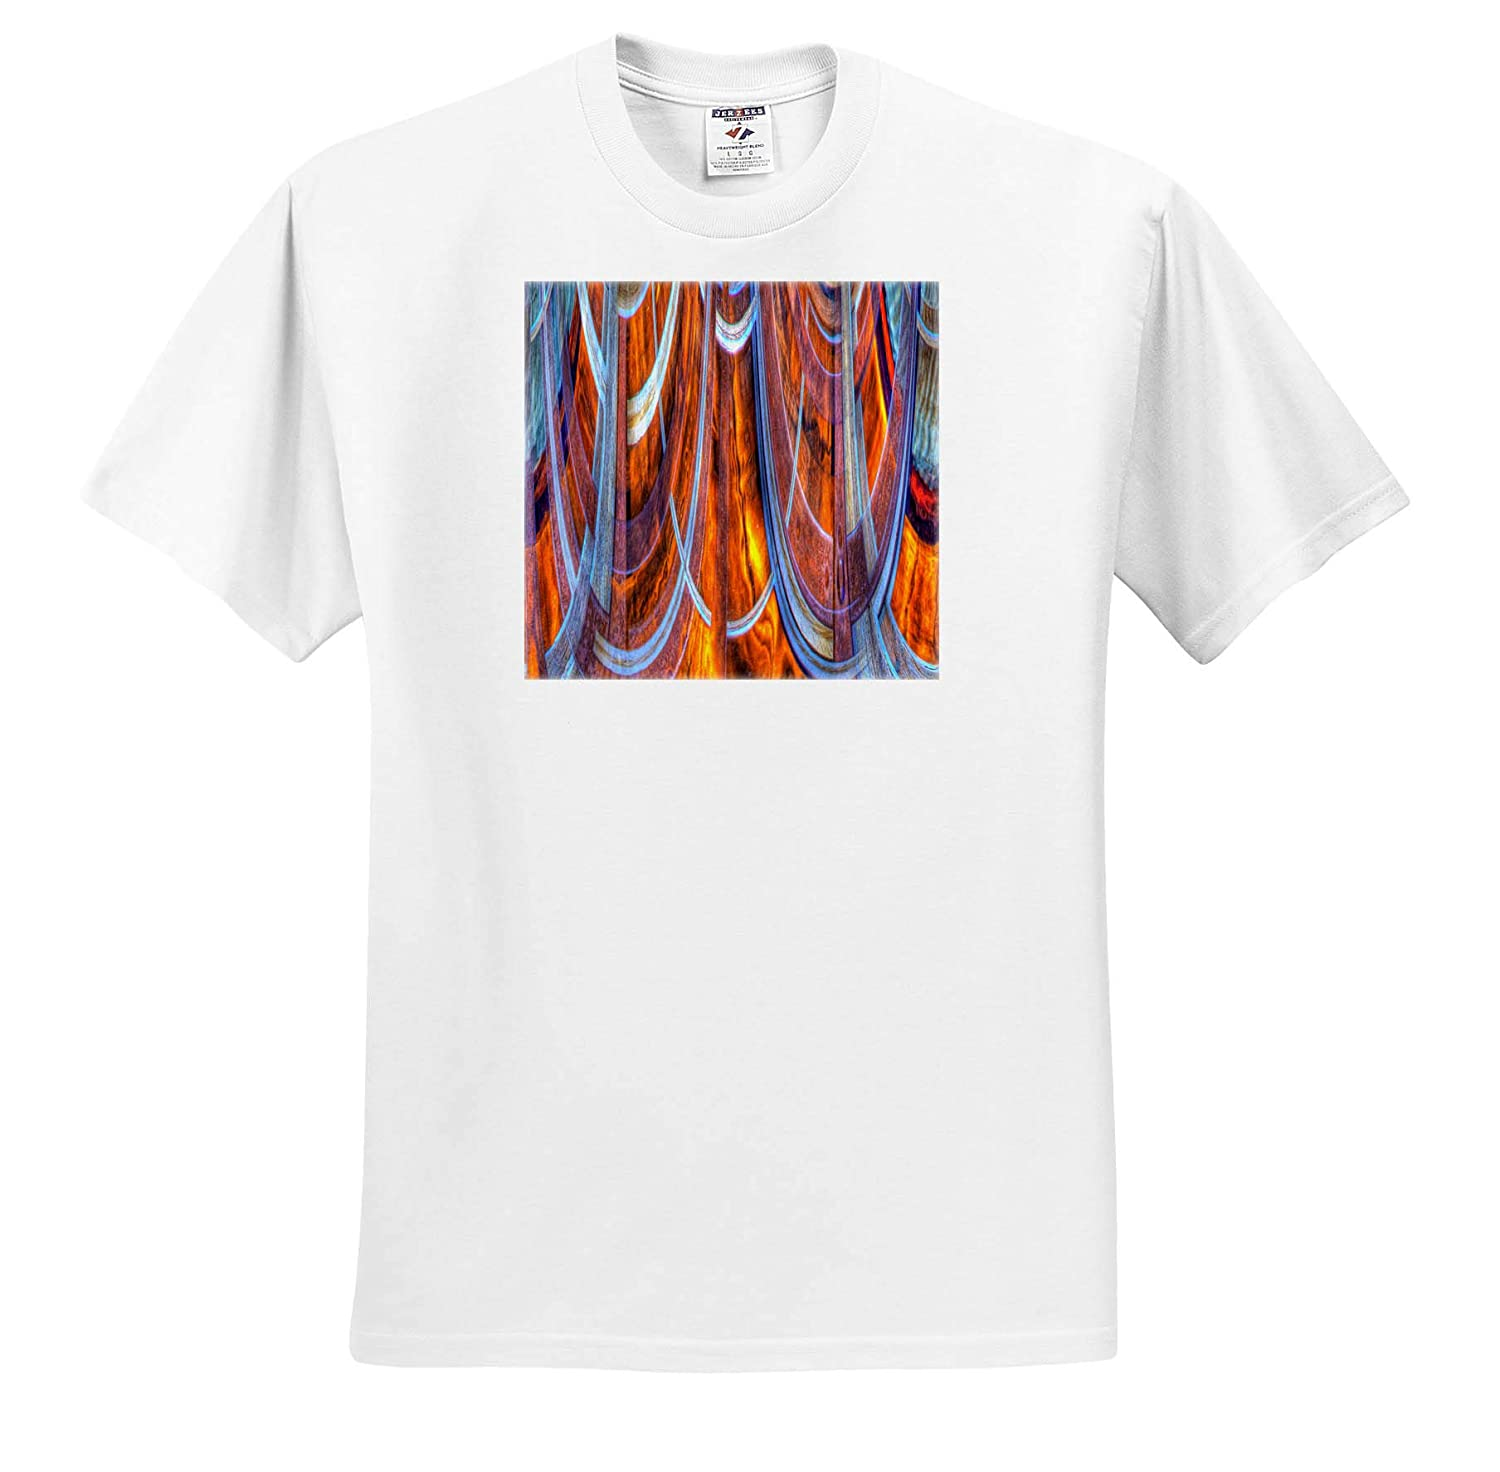 Abstracts ts/_314623 California - Adult T-Shirt XL Bodie State Park 3dRose Danita Delimont Abstract of Window USA